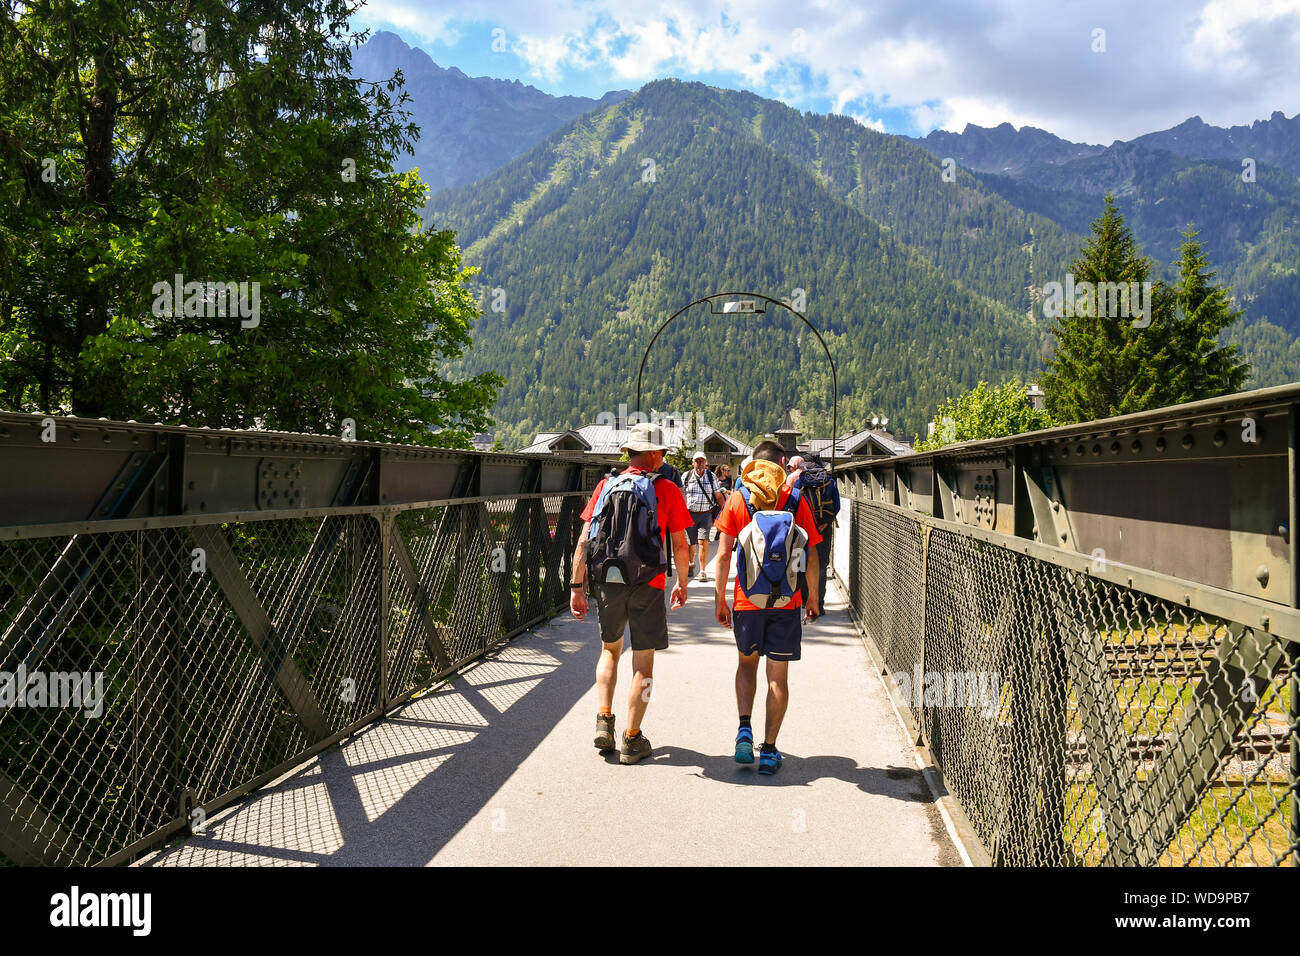 Tourists and hikers crossing a pedestrian bridge over the railway with the mountains in the background in summer, Chamonix-Mont-Blanc, Alps, France Stock Photo